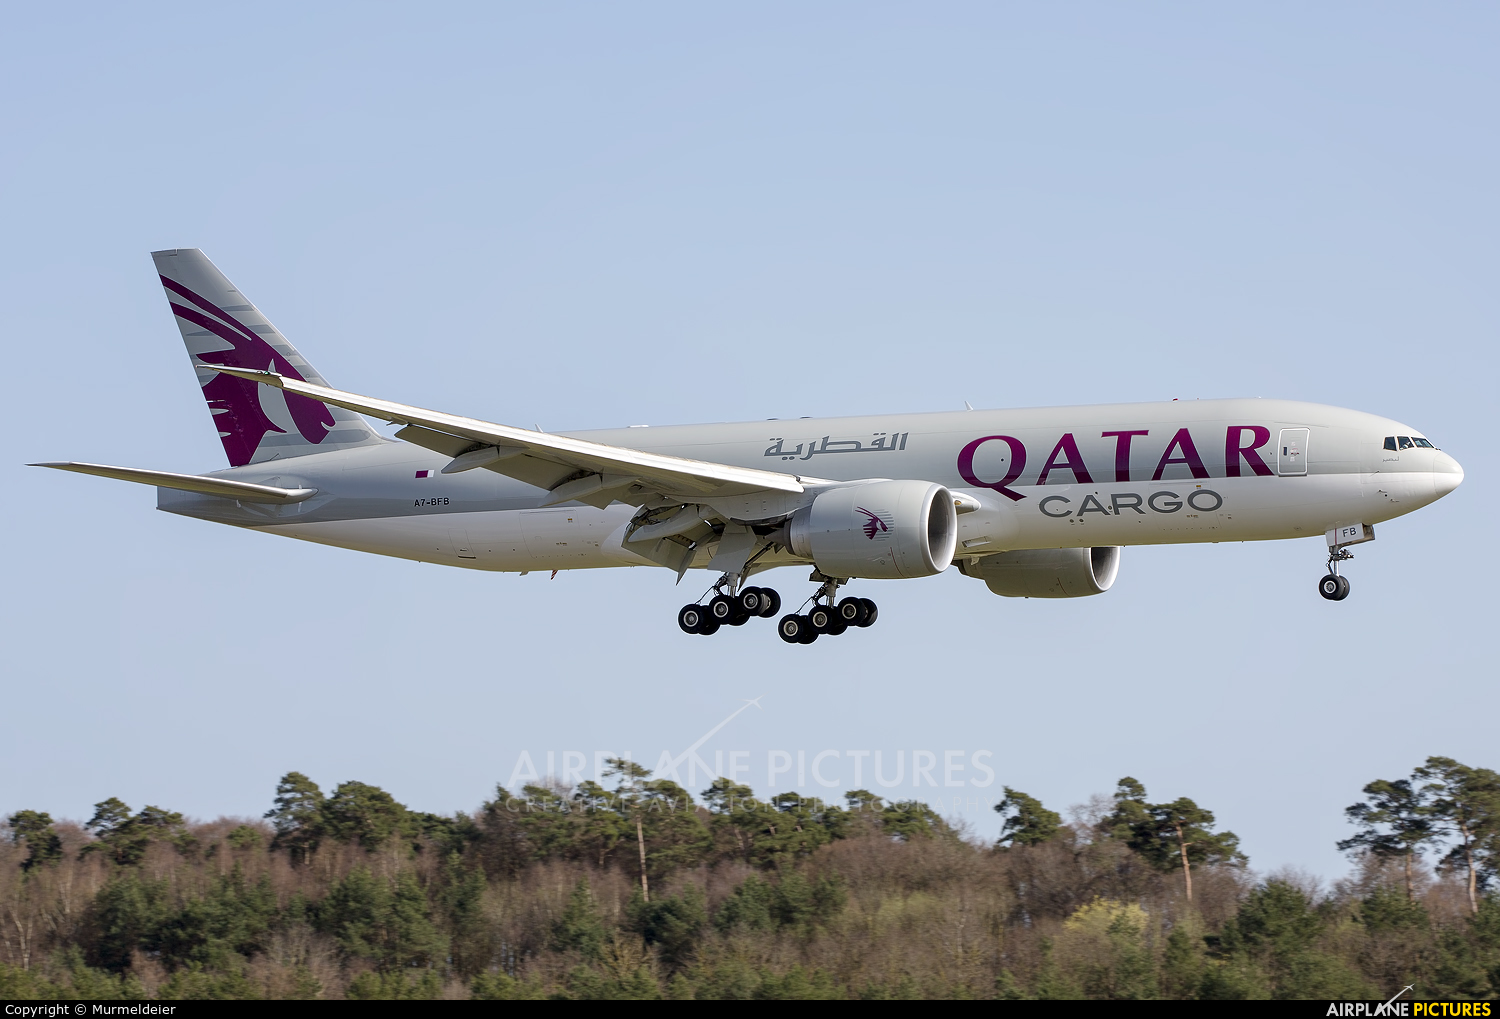 Qatar Airways Cargo A7-BFB aircraft at Luxembourg - Findel